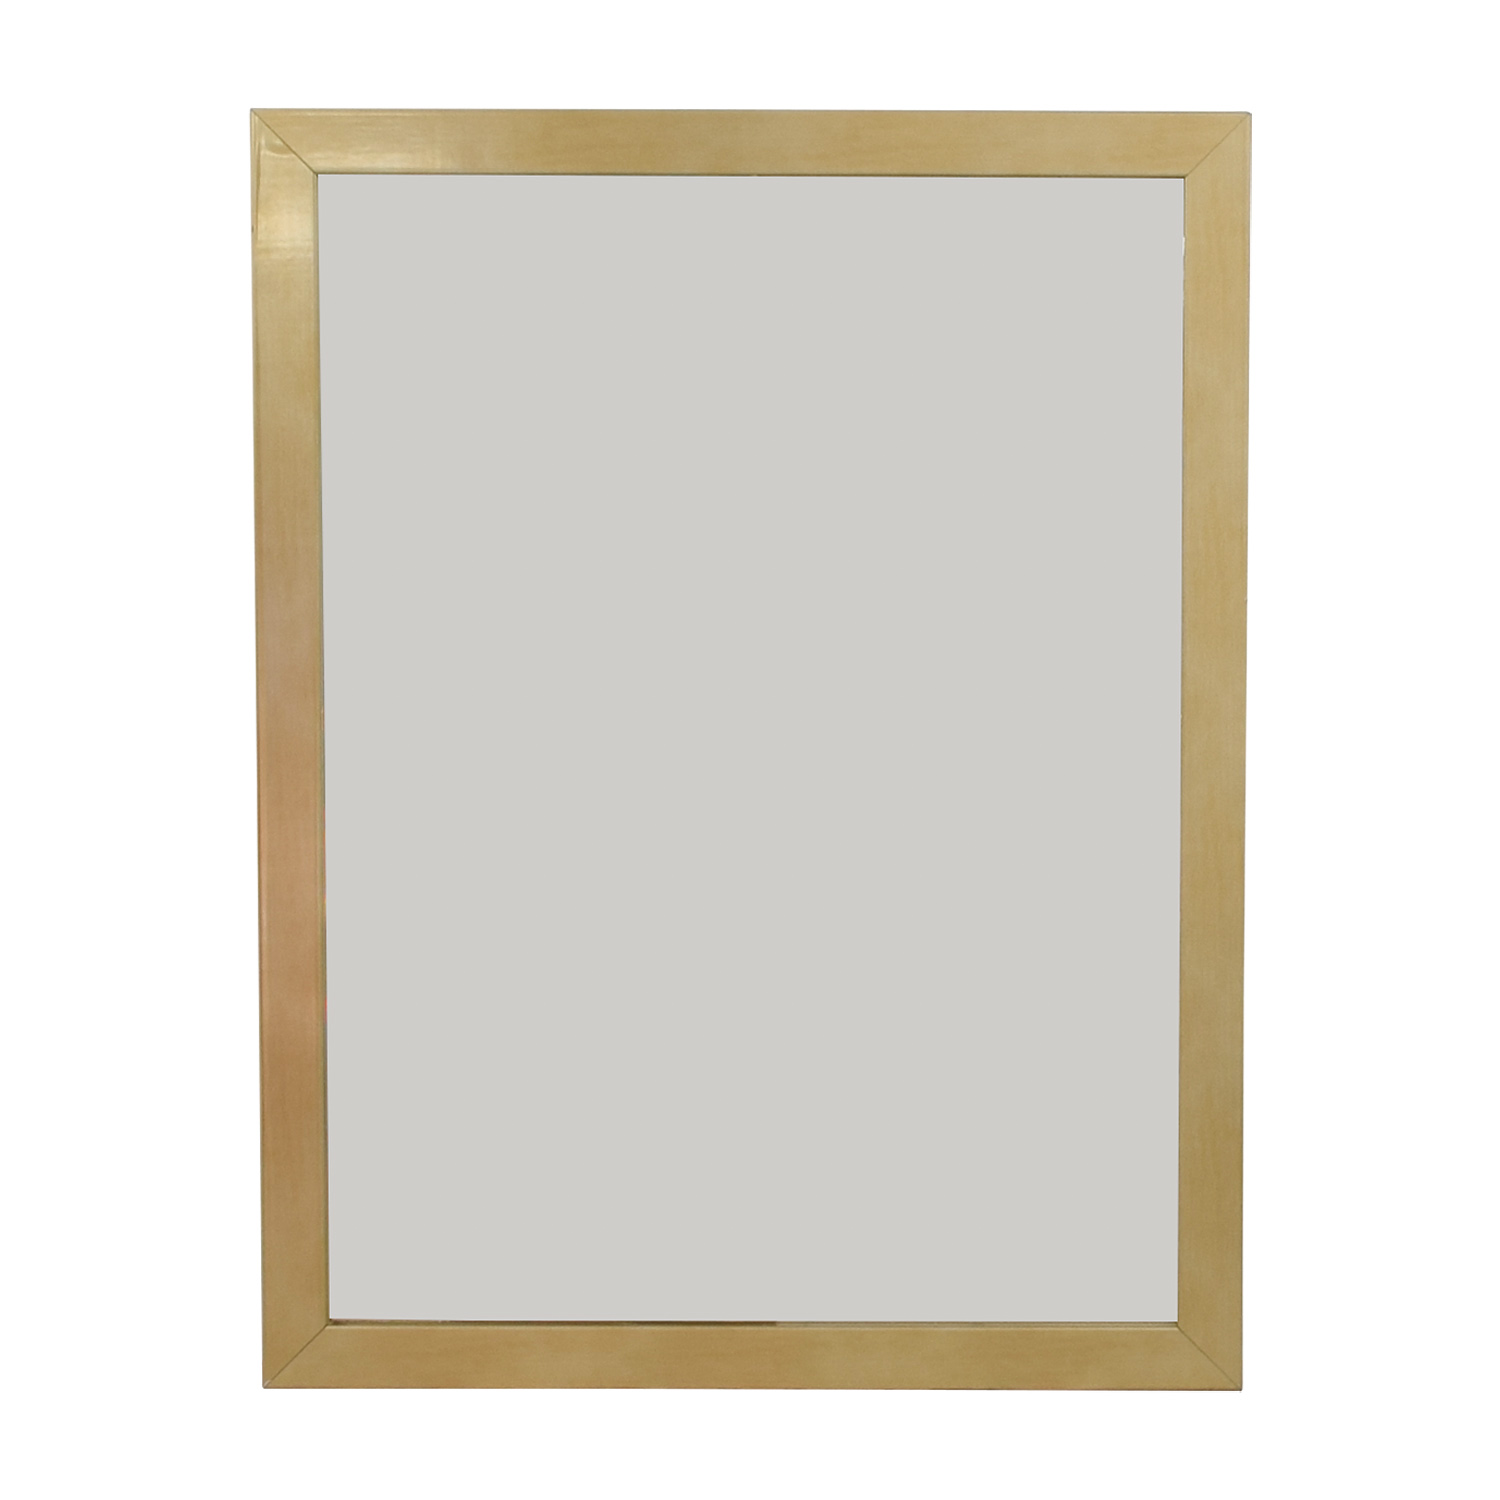 Hitchcock Butterfield Gold Framed Mirror sale